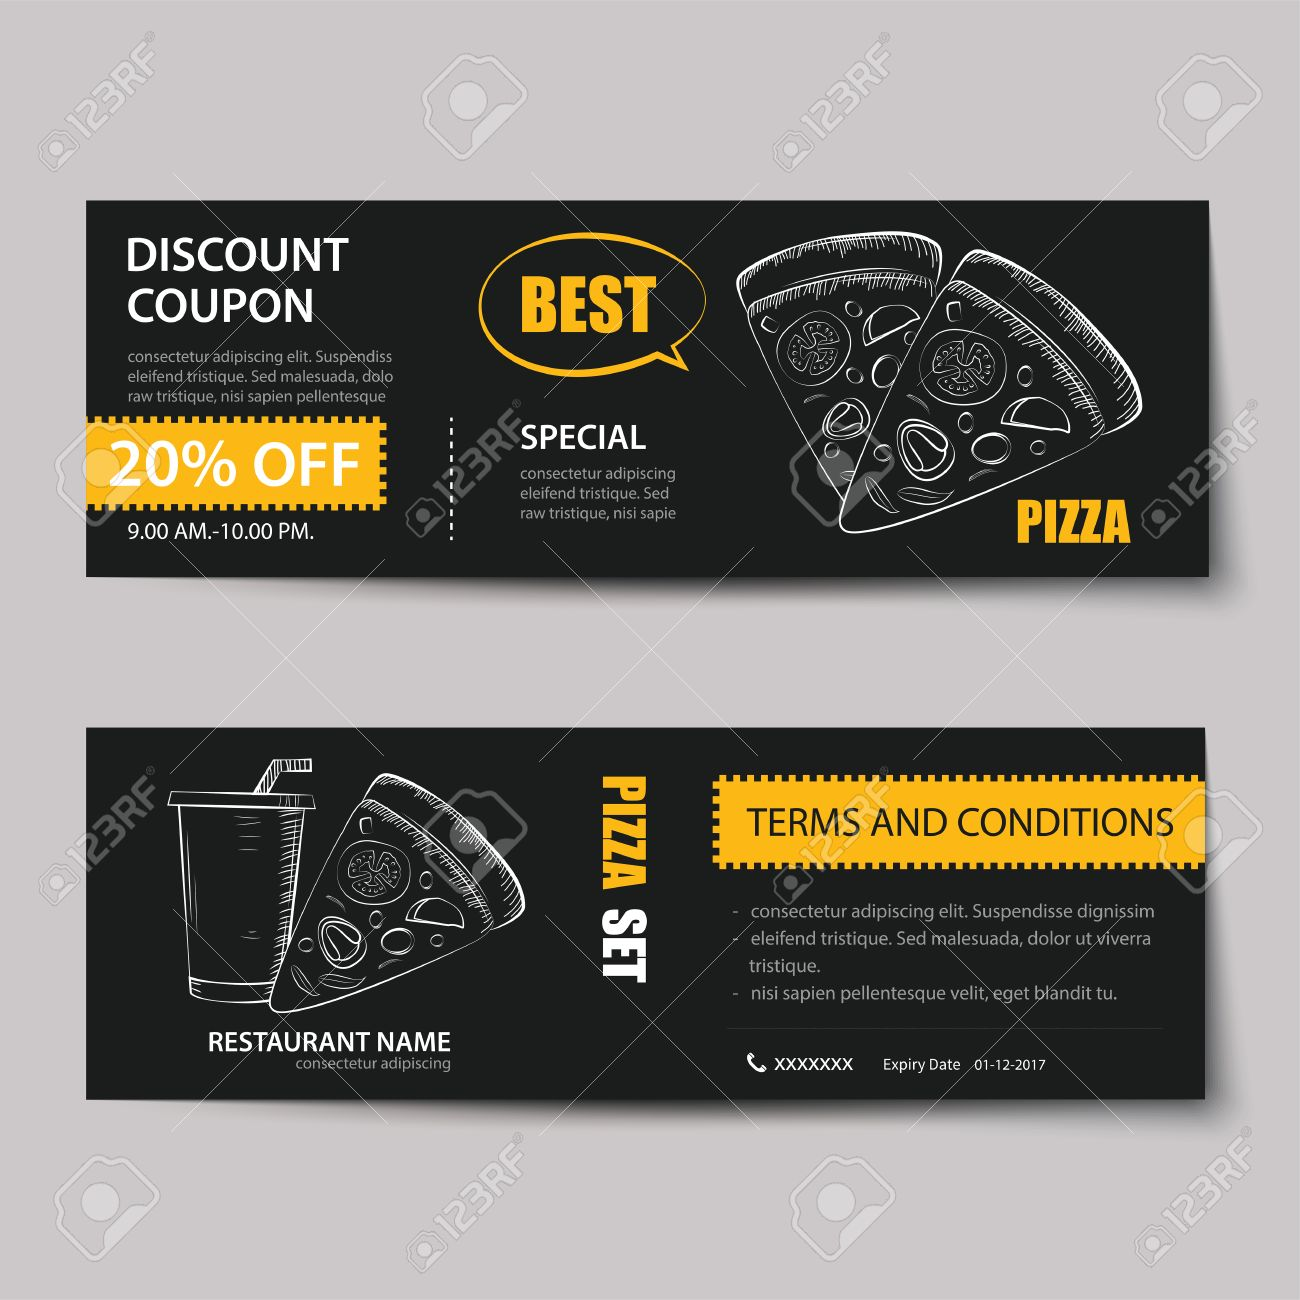 Fast Food Coupon Discount Template Flat Design Royalty Free Cliparts